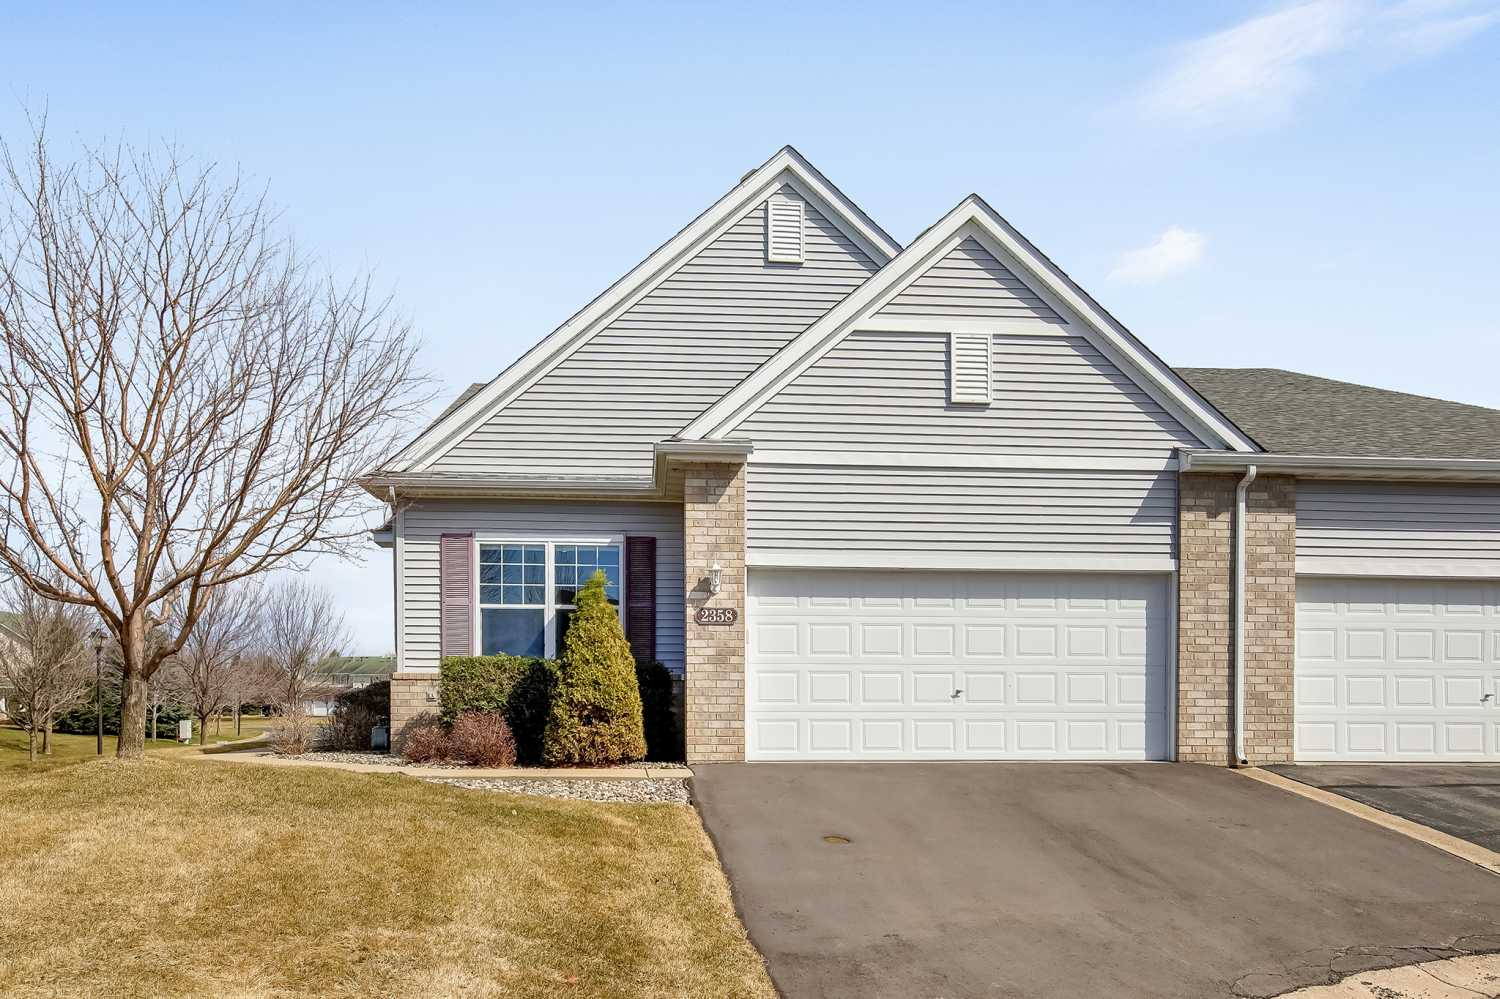 Web-Friendly-2358-Beech-Street-West-Rosemount-MN-1.jpg